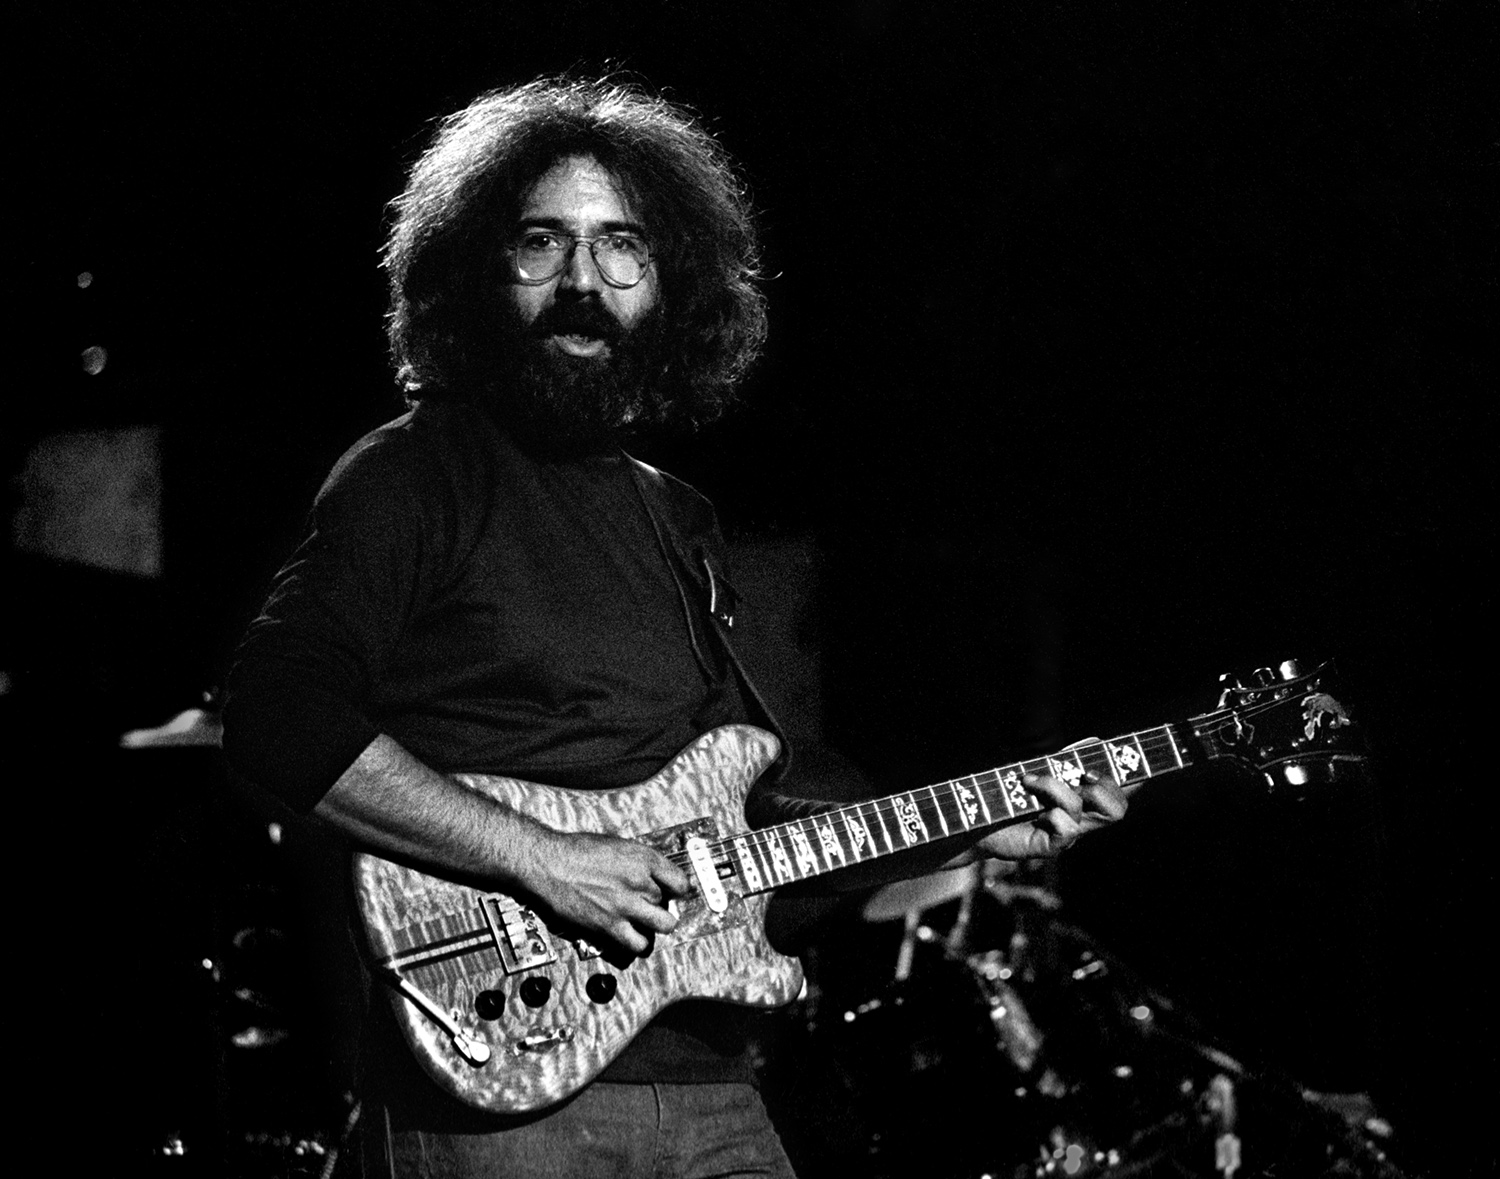 Jerry Garcia St. Louis, MO 1973